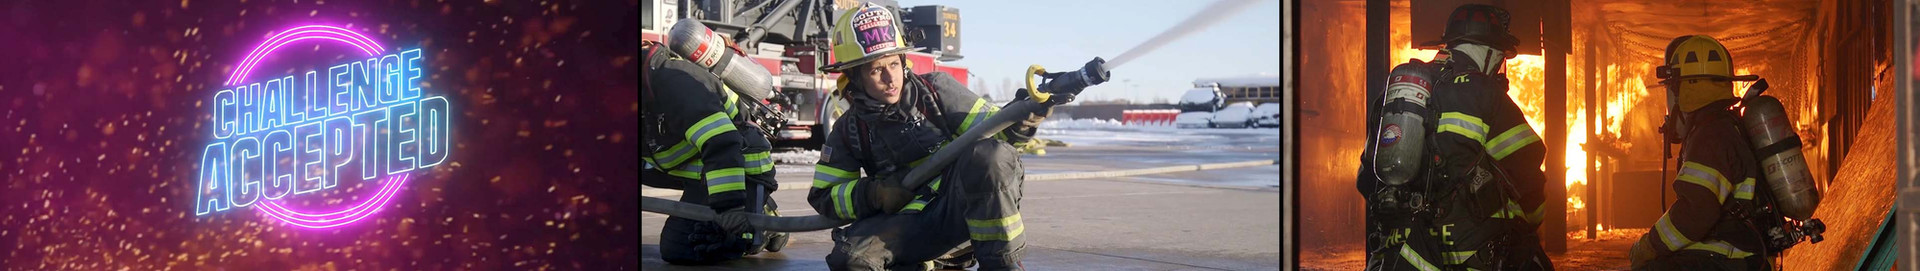 I Tried Firefighter Academy | Michelle Khare